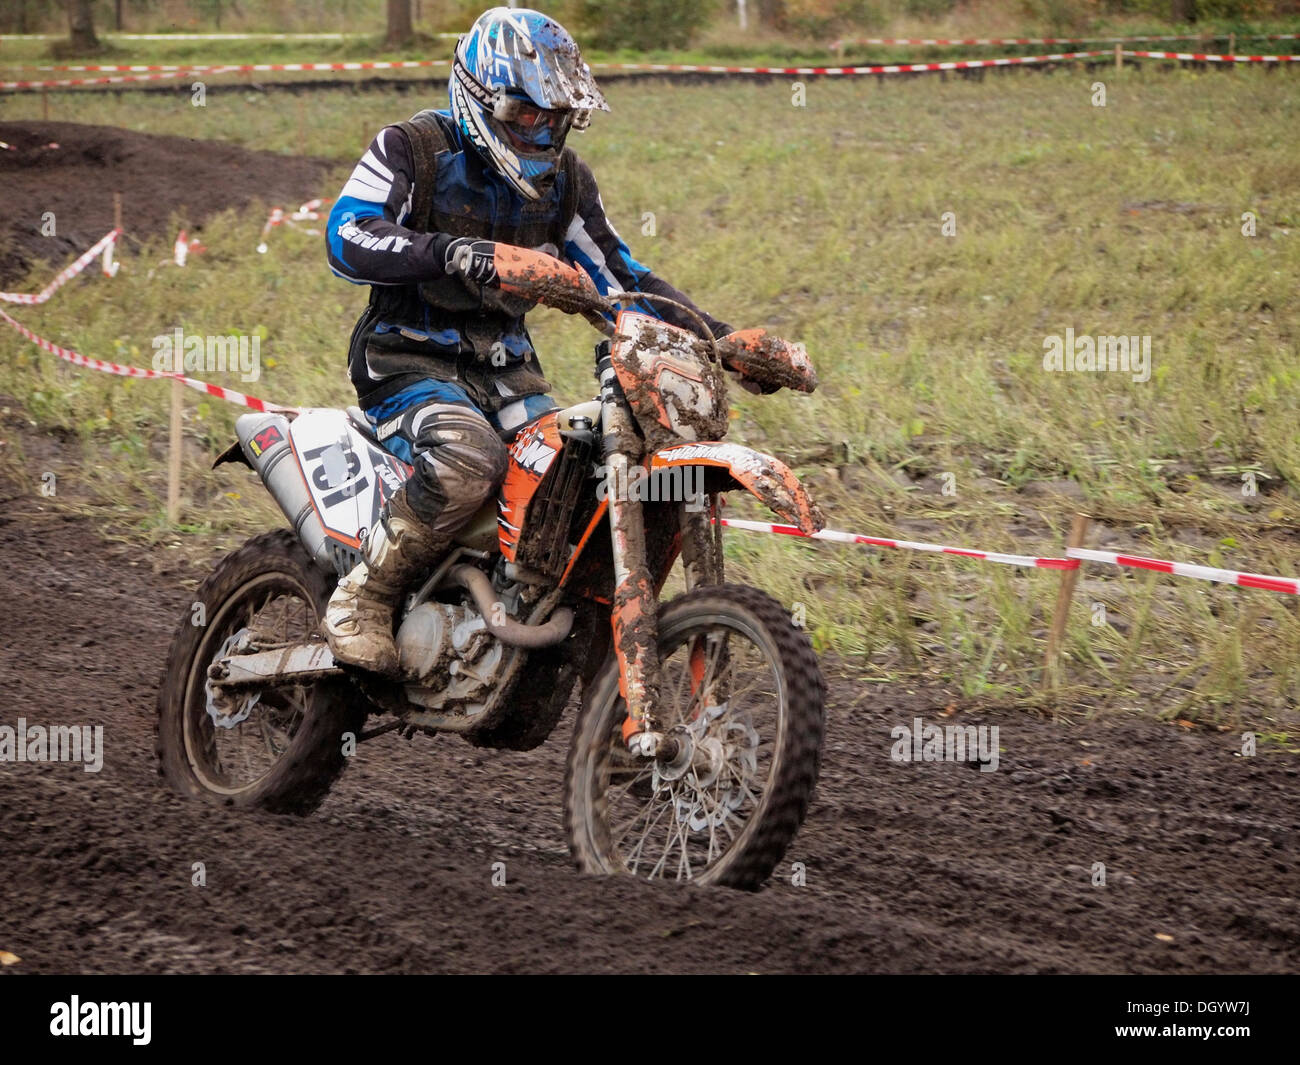 Recreational motocross rider on KTM motorcycle Ruurlo, the Netherlands - Stock Image